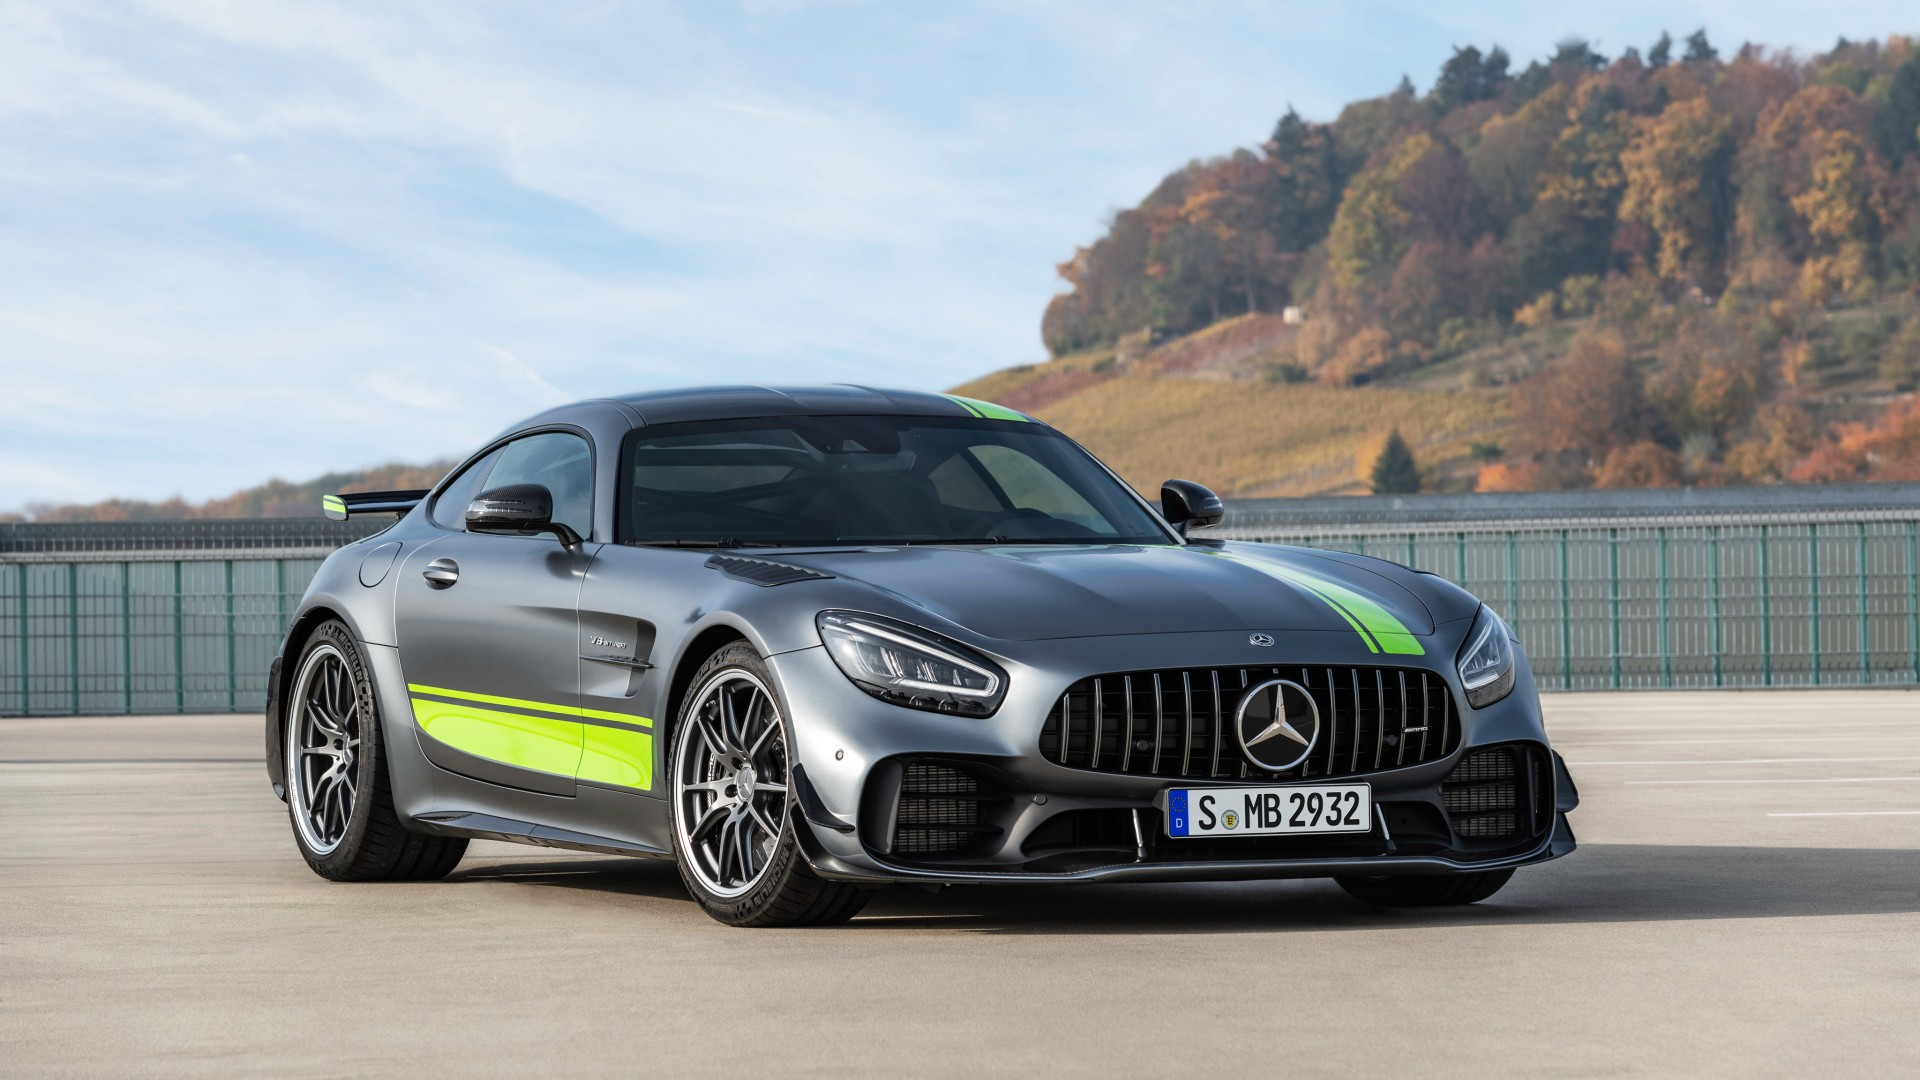 mercedes amg gt r pro 2019 4k 4 wallpaper hd car. Black Bedroom Furniture Sets. Home Design Ideas